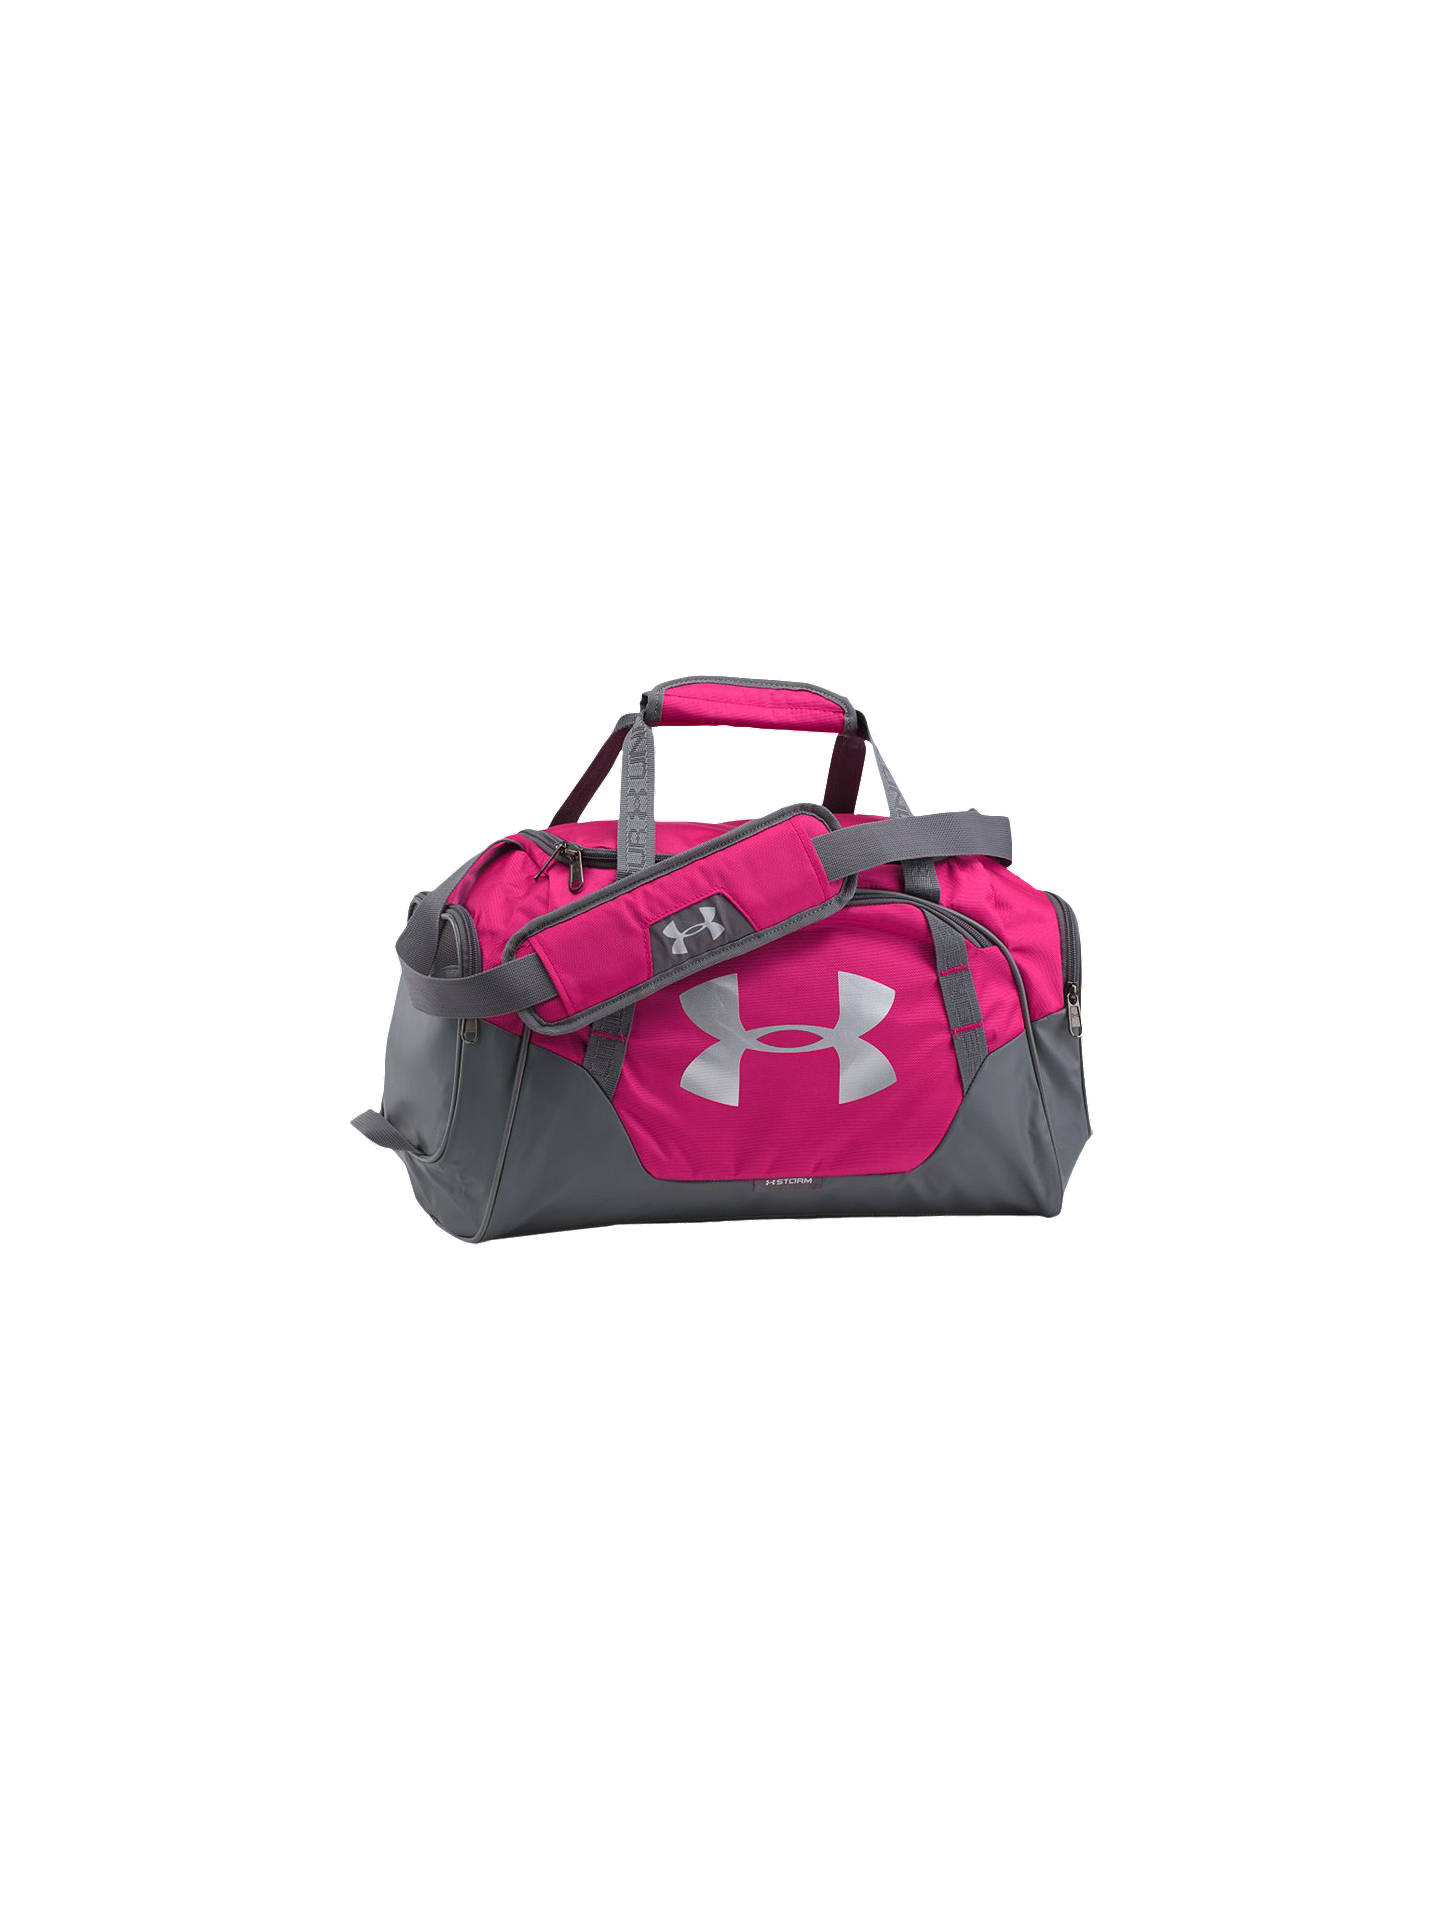 6ca59a3bce5 Buy Under Armour Storm Undeniable 3.0 Extra Small Bag, Pink Online at  johnlewis.com ...